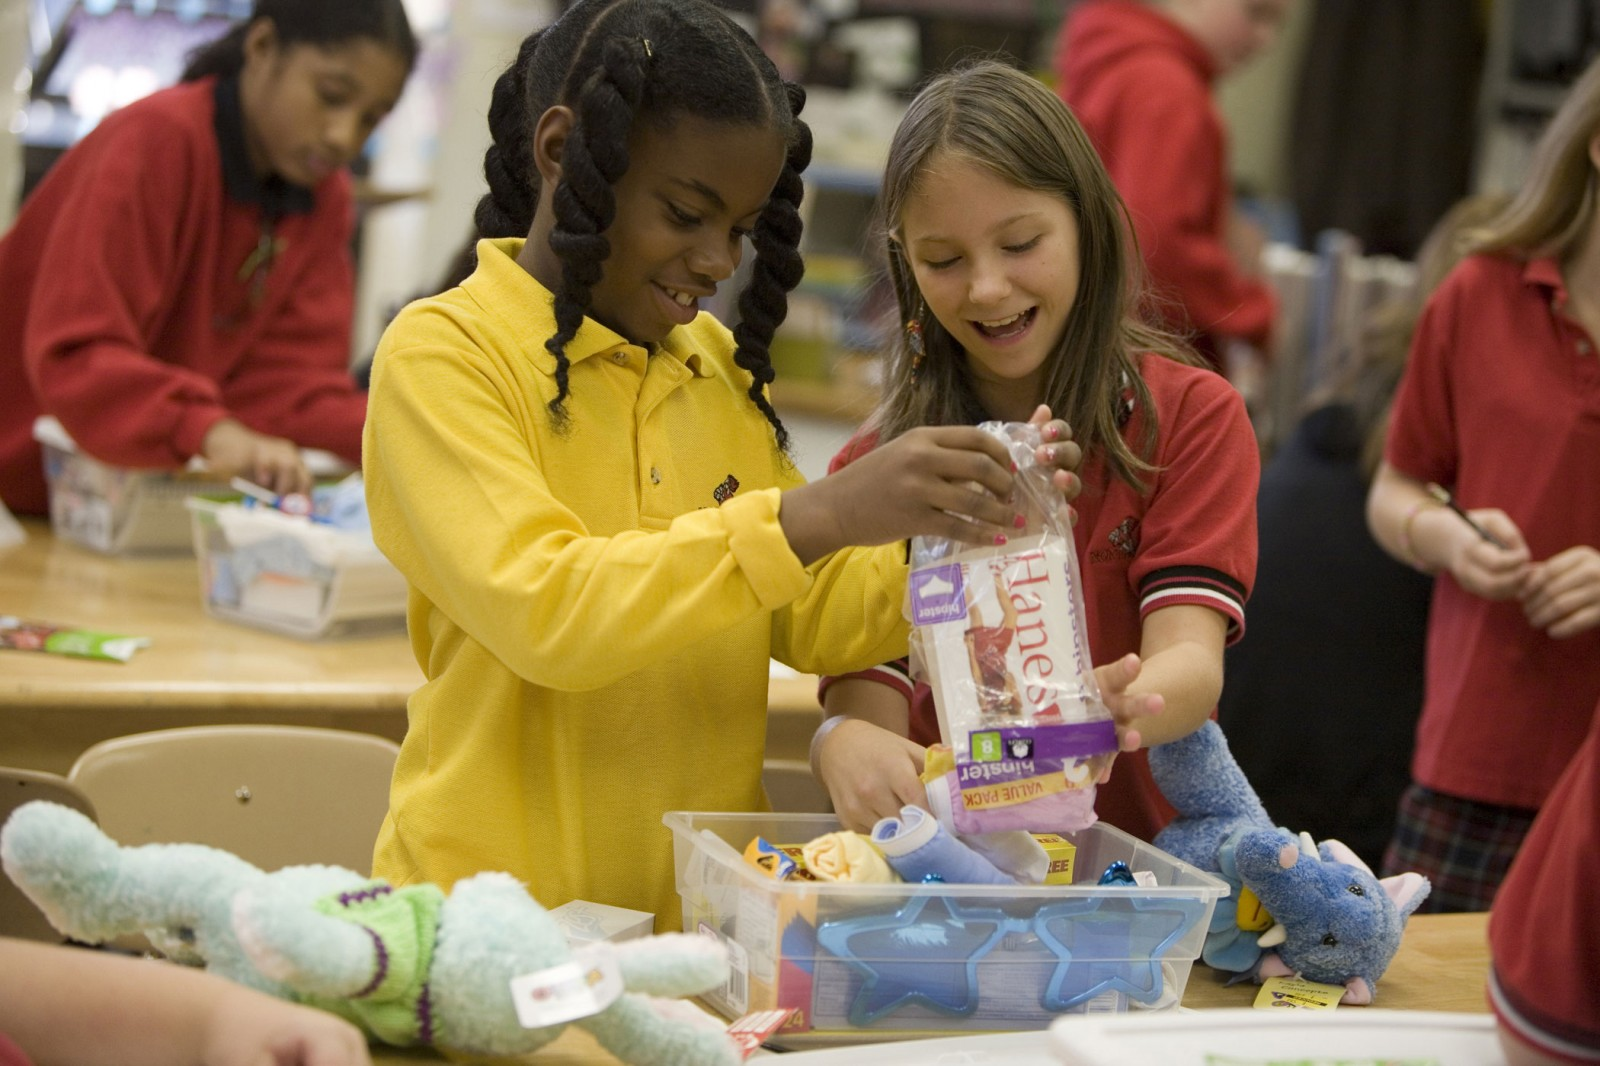 Through Operation Christmas Child, kids and families wrap and pack empty shoeboxes with simple items most people take for granted, including toys, school supplies and hygiene items. - Retail Chain Hobby Lobby Joins Effort to Make Christmas a Reality for 12 Million Children -